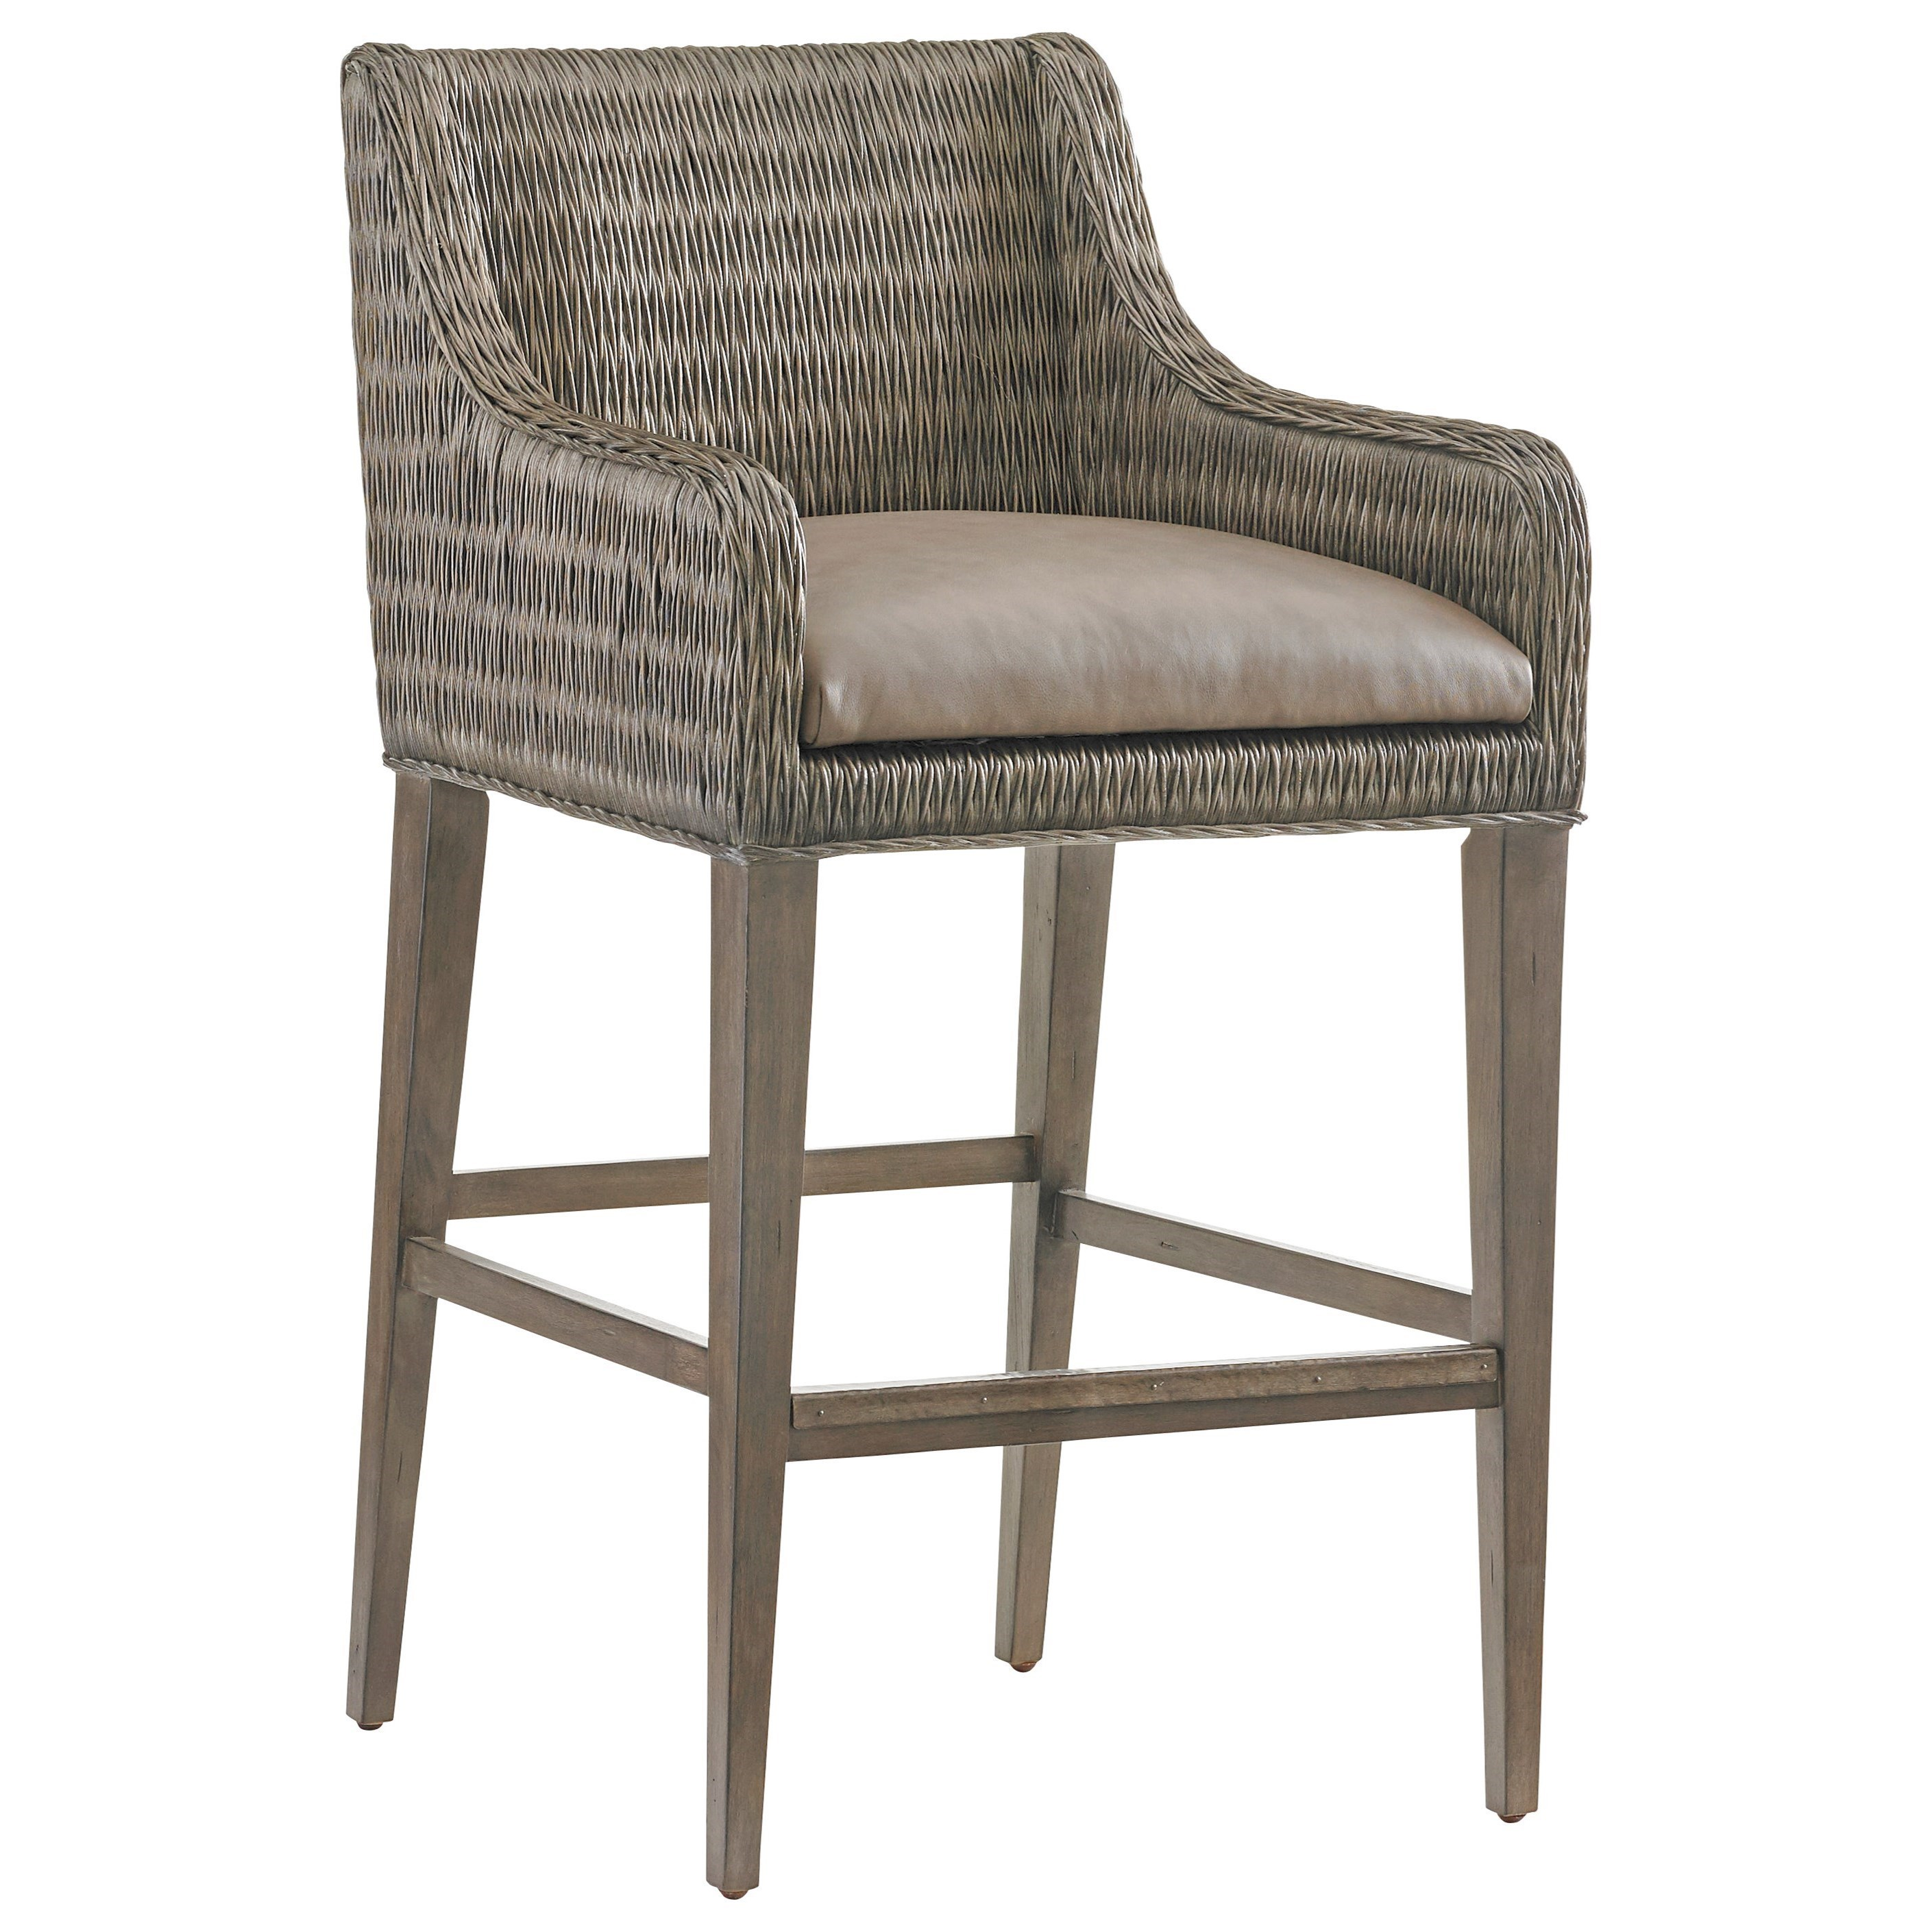 Tommy Bahama Home Cypress Point Turner Woven Rattan Bar Stool With Gray  Faux Leather Seat